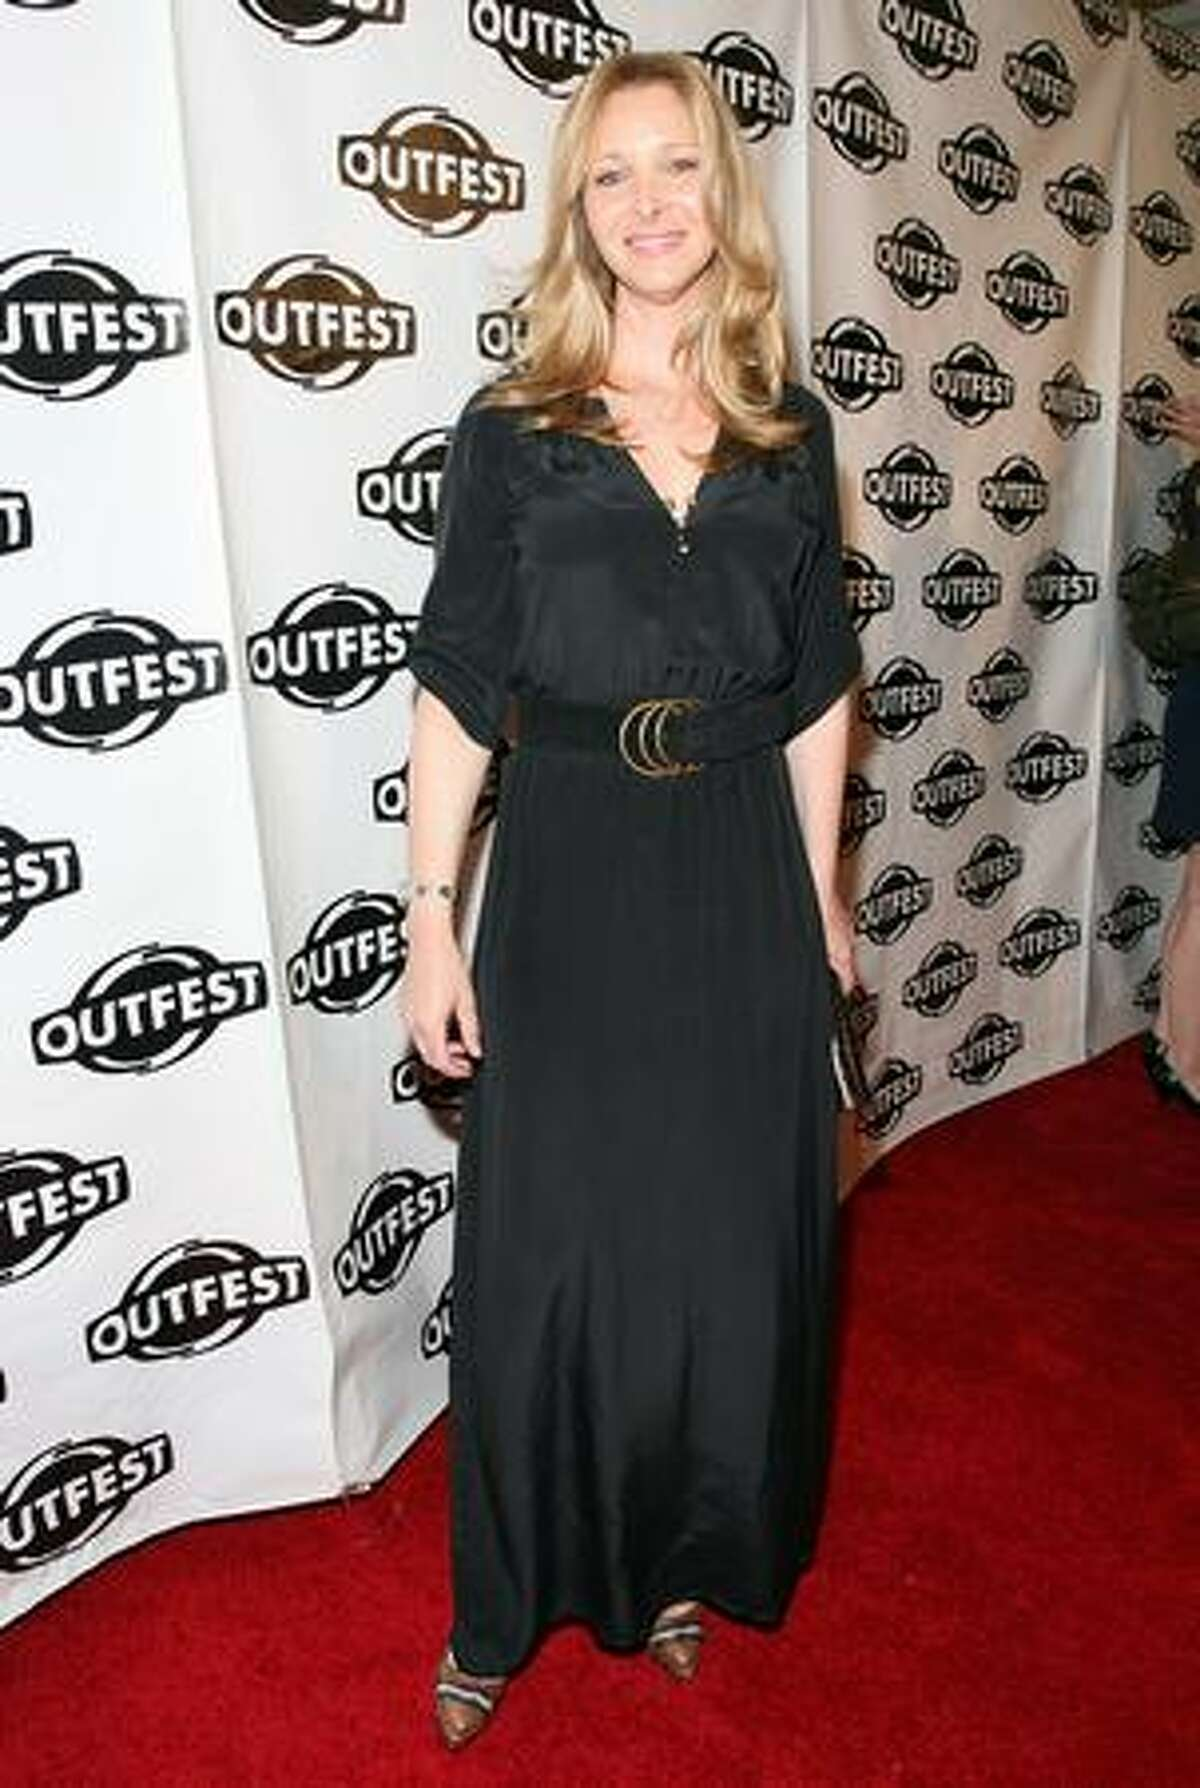 Actress Lisa Kudrow arrives to the 2009 Outfest opening night gala of 'La Mission' held at The Orpheum Theatre in Los Angeles, California.